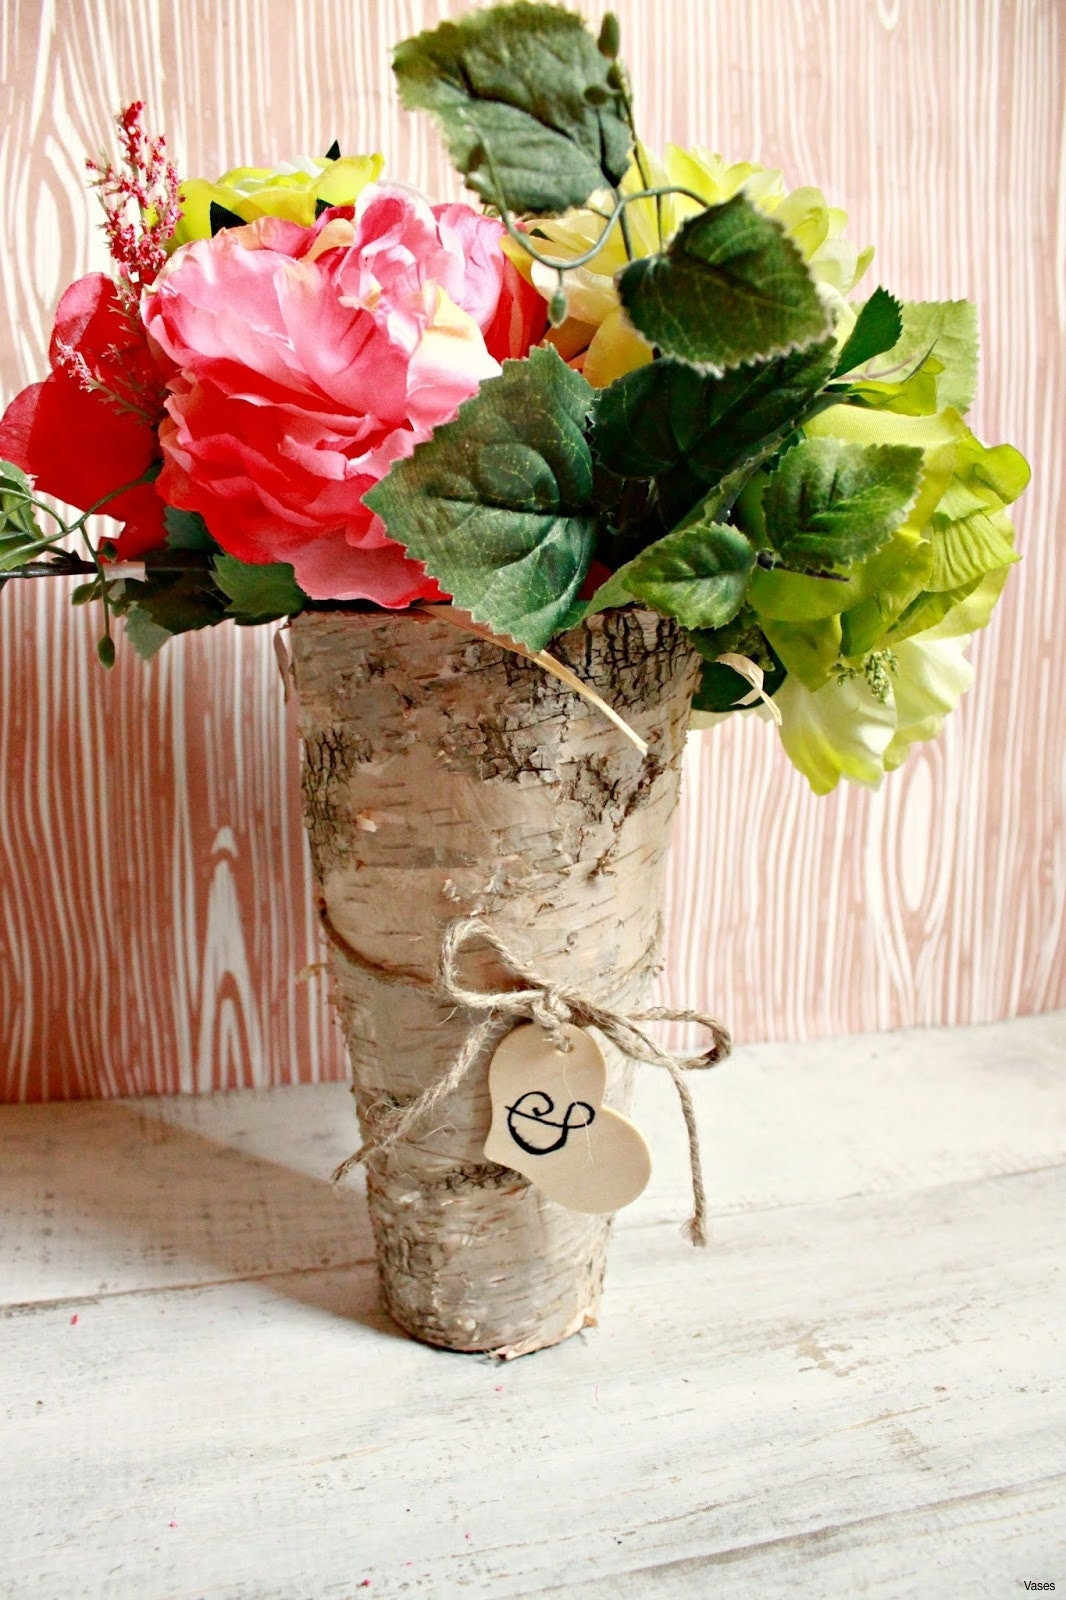 vase with roses of rose gold vase images flowers and decorations for weddings h vases throughout rose gold vase images flowers and decorations for weddings h vases diy wood vase i 0d